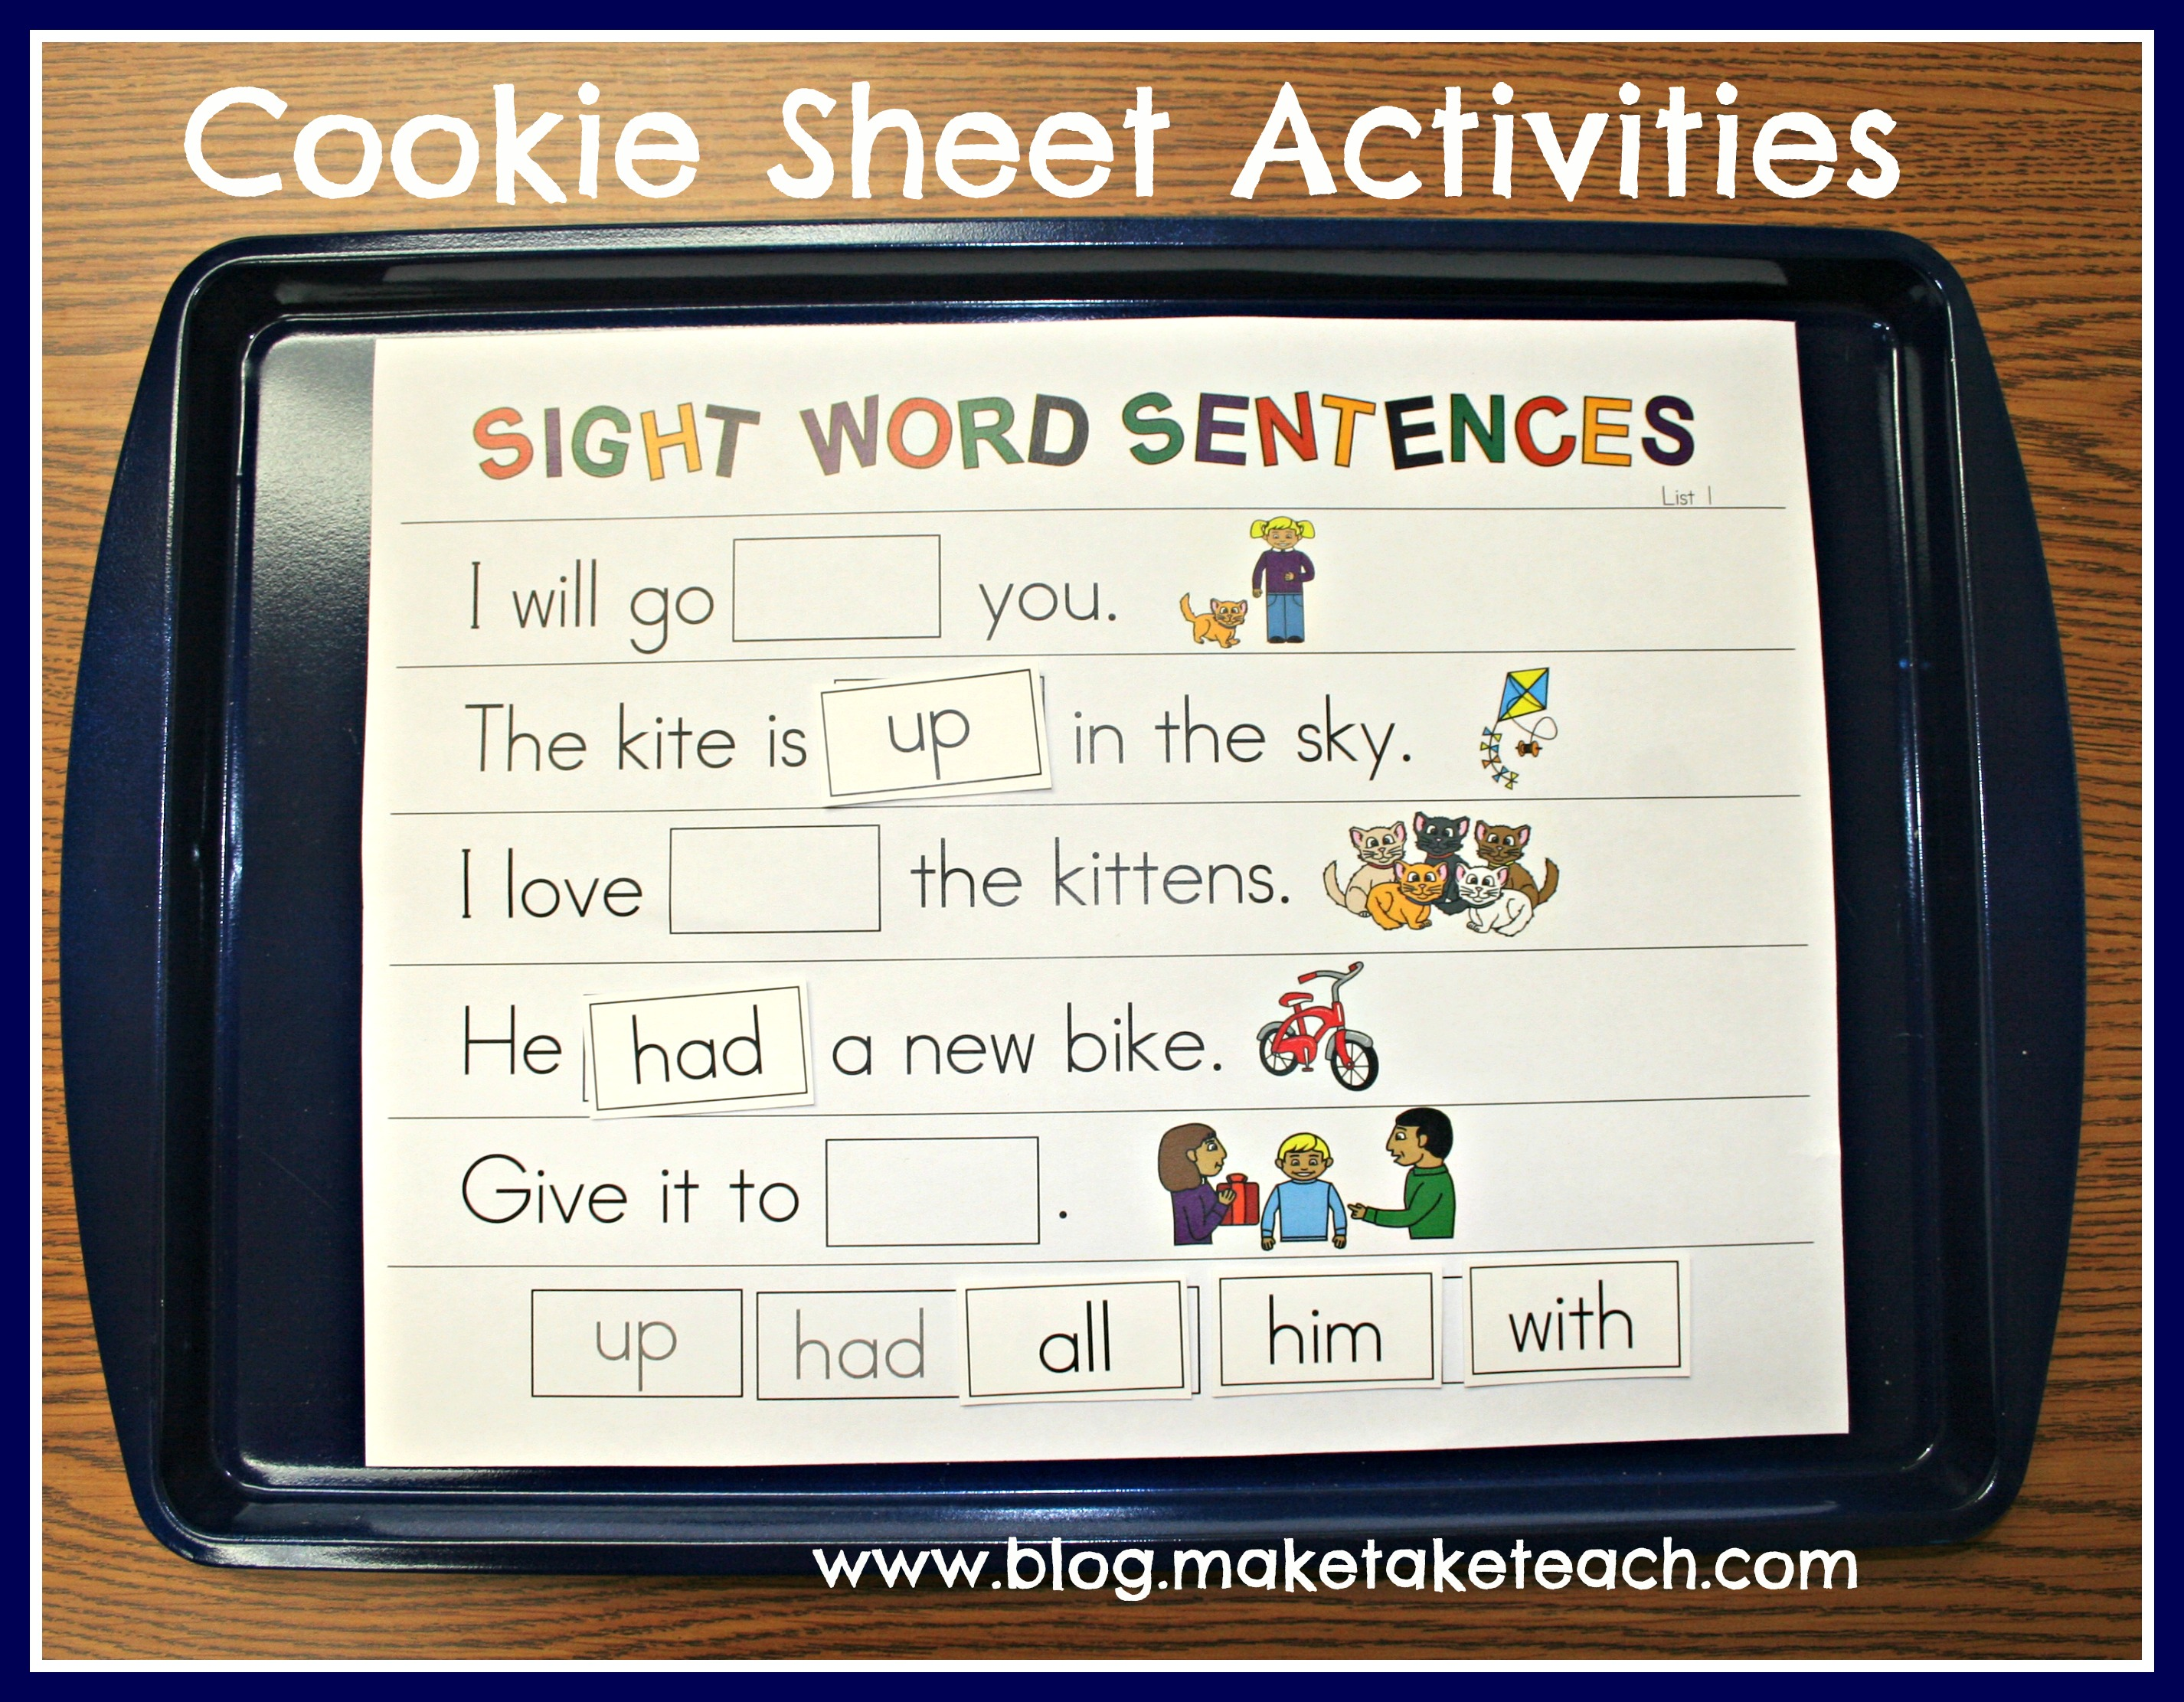 activities  in Word Kindergarten kindergarten word sight Worksheets Sight Pictures